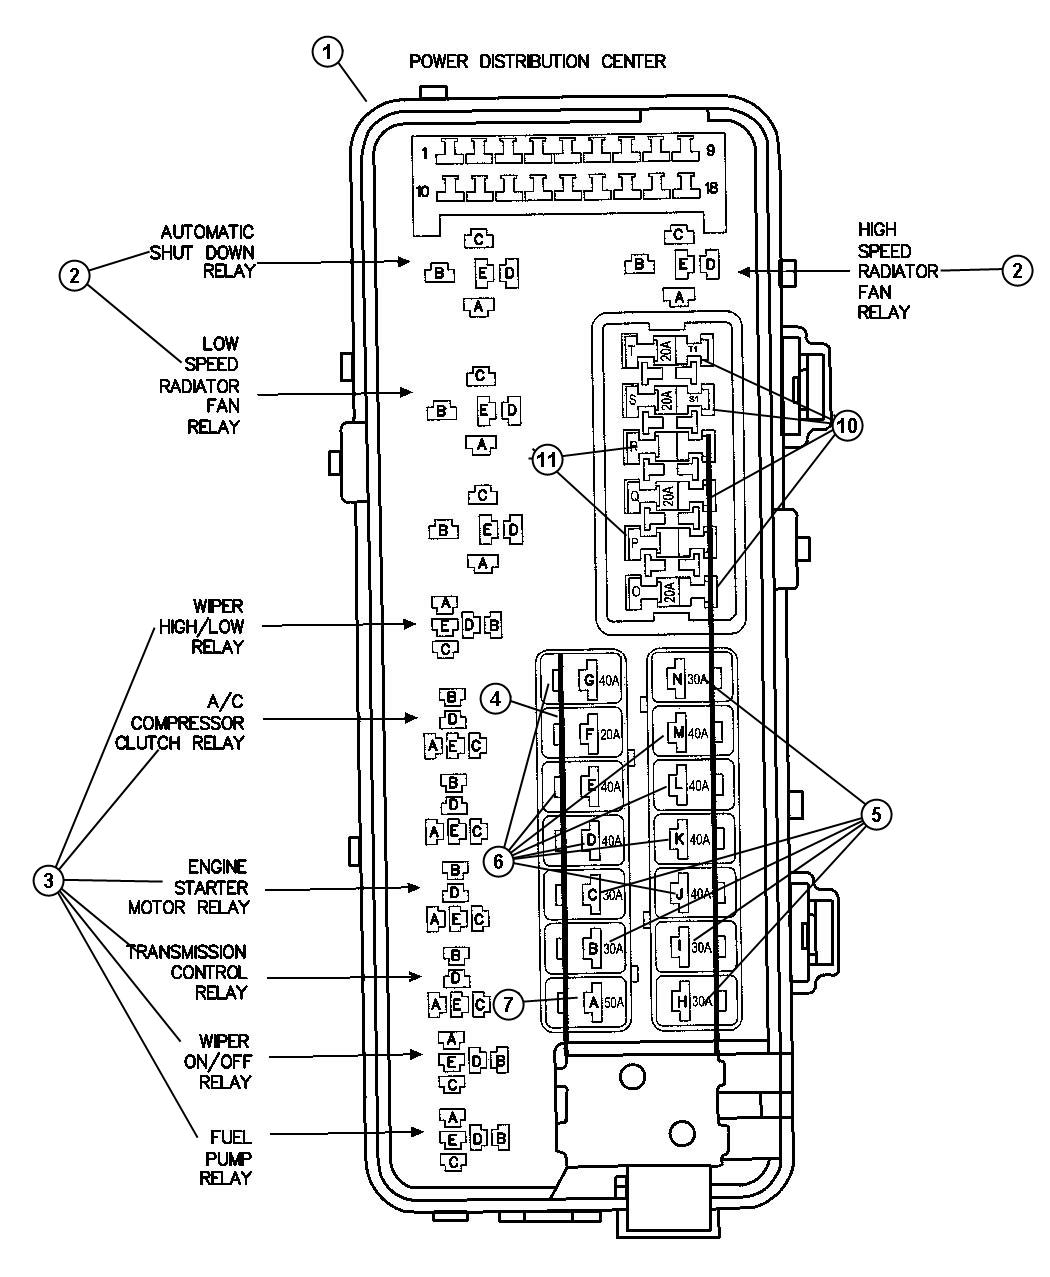 hight resolution of diagram of 2002 dodge intrepid fuse box diagram get free 2000 chrysler concorde fuse box diagram